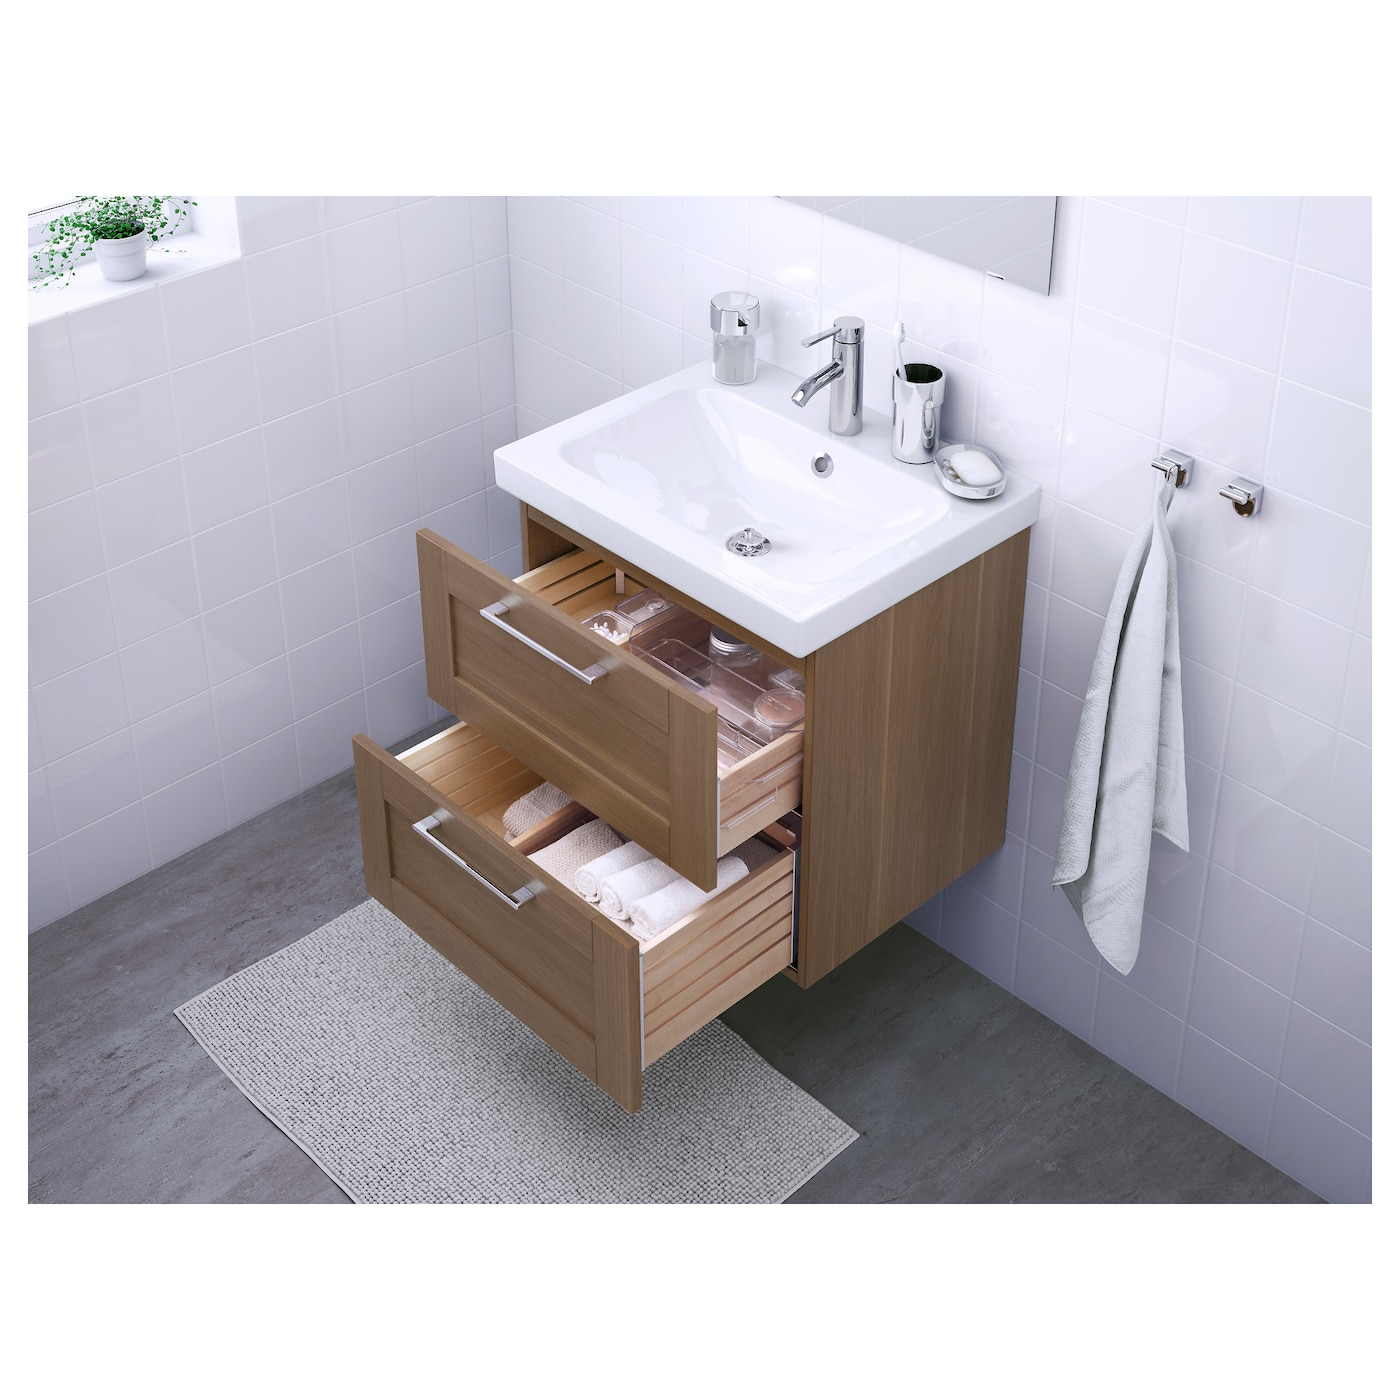 odensvik godmorgon wash stand with 2 drawers walnut effect 63x49x64 cm ikea. Black Bedroom Furniture Sets. Home Design Ideas